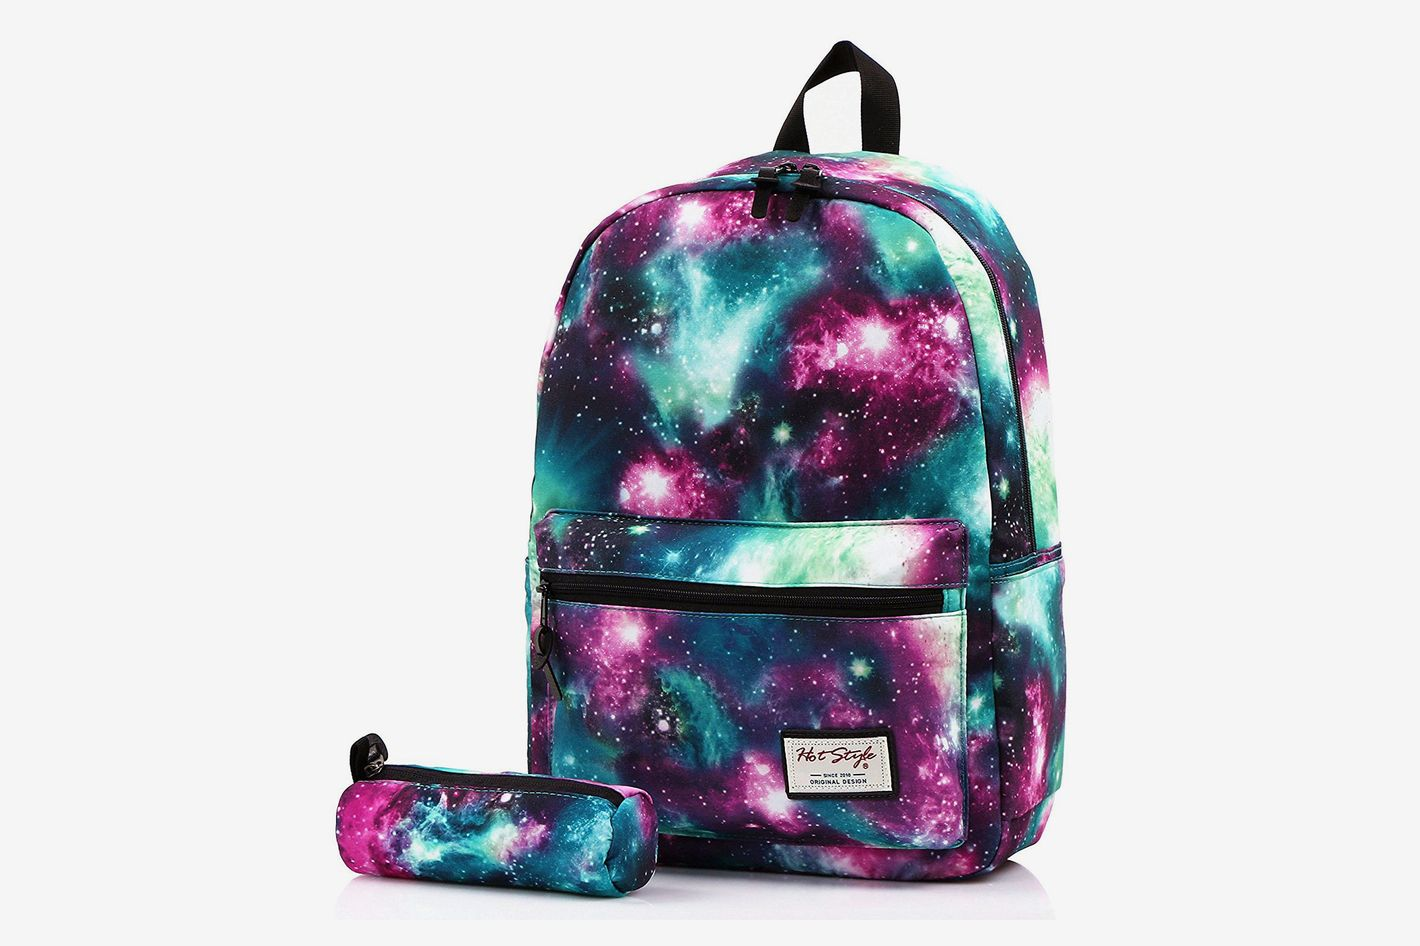 ef165f8c2eb8 HotStyle Trendymax Galaxy Backpack